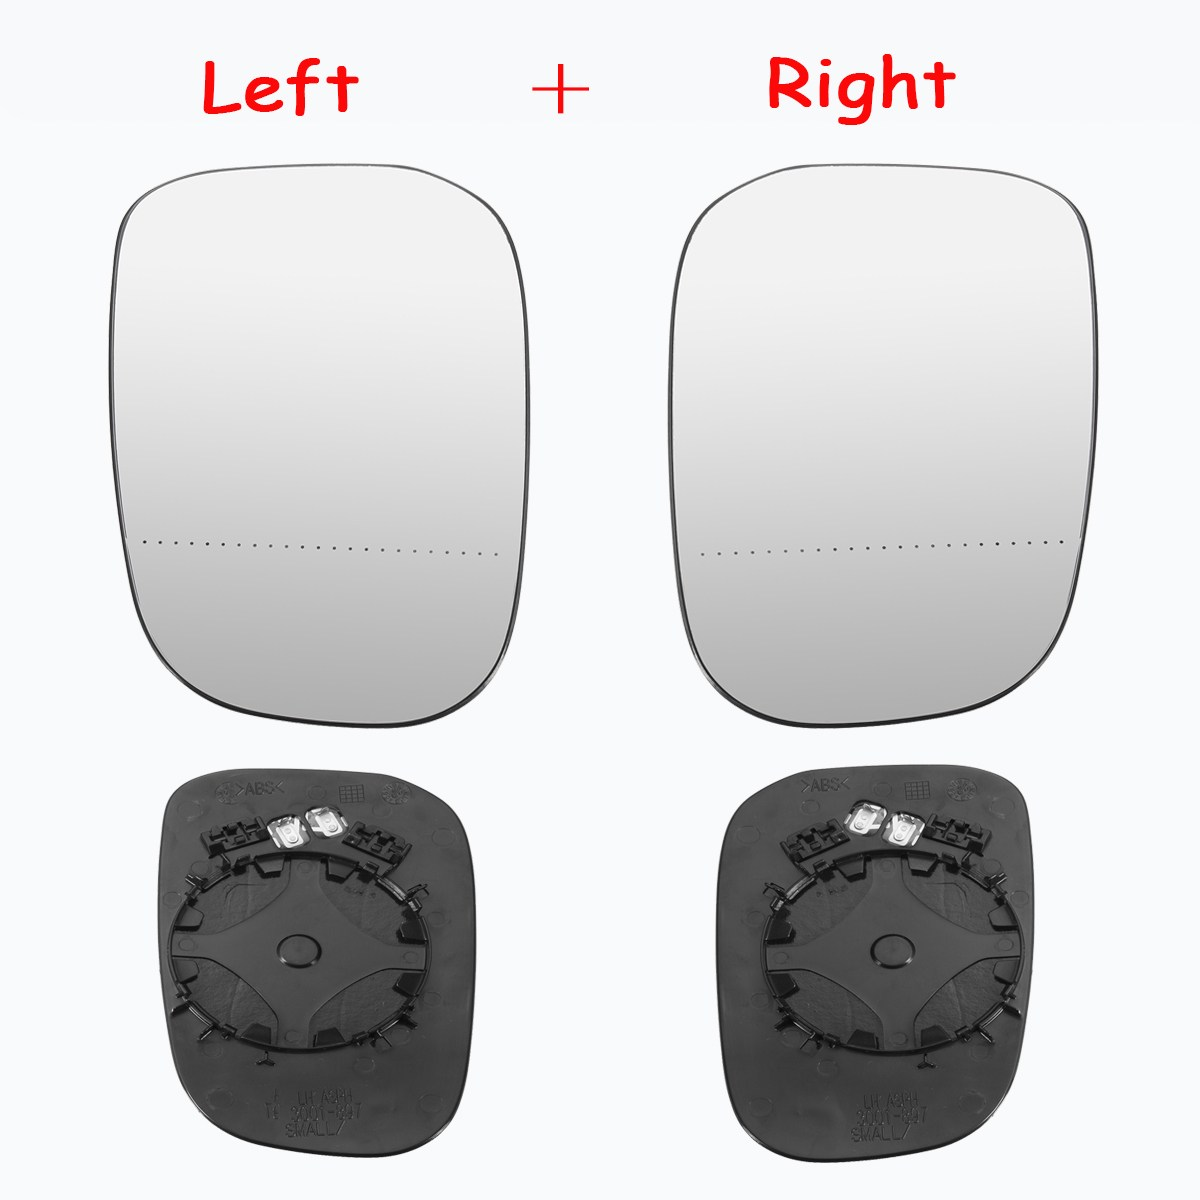 VO-S60 2000 to 2003 Heated Silver Aspheric Wing//Door Mirror Glass Including Base Plate RH Driver Side